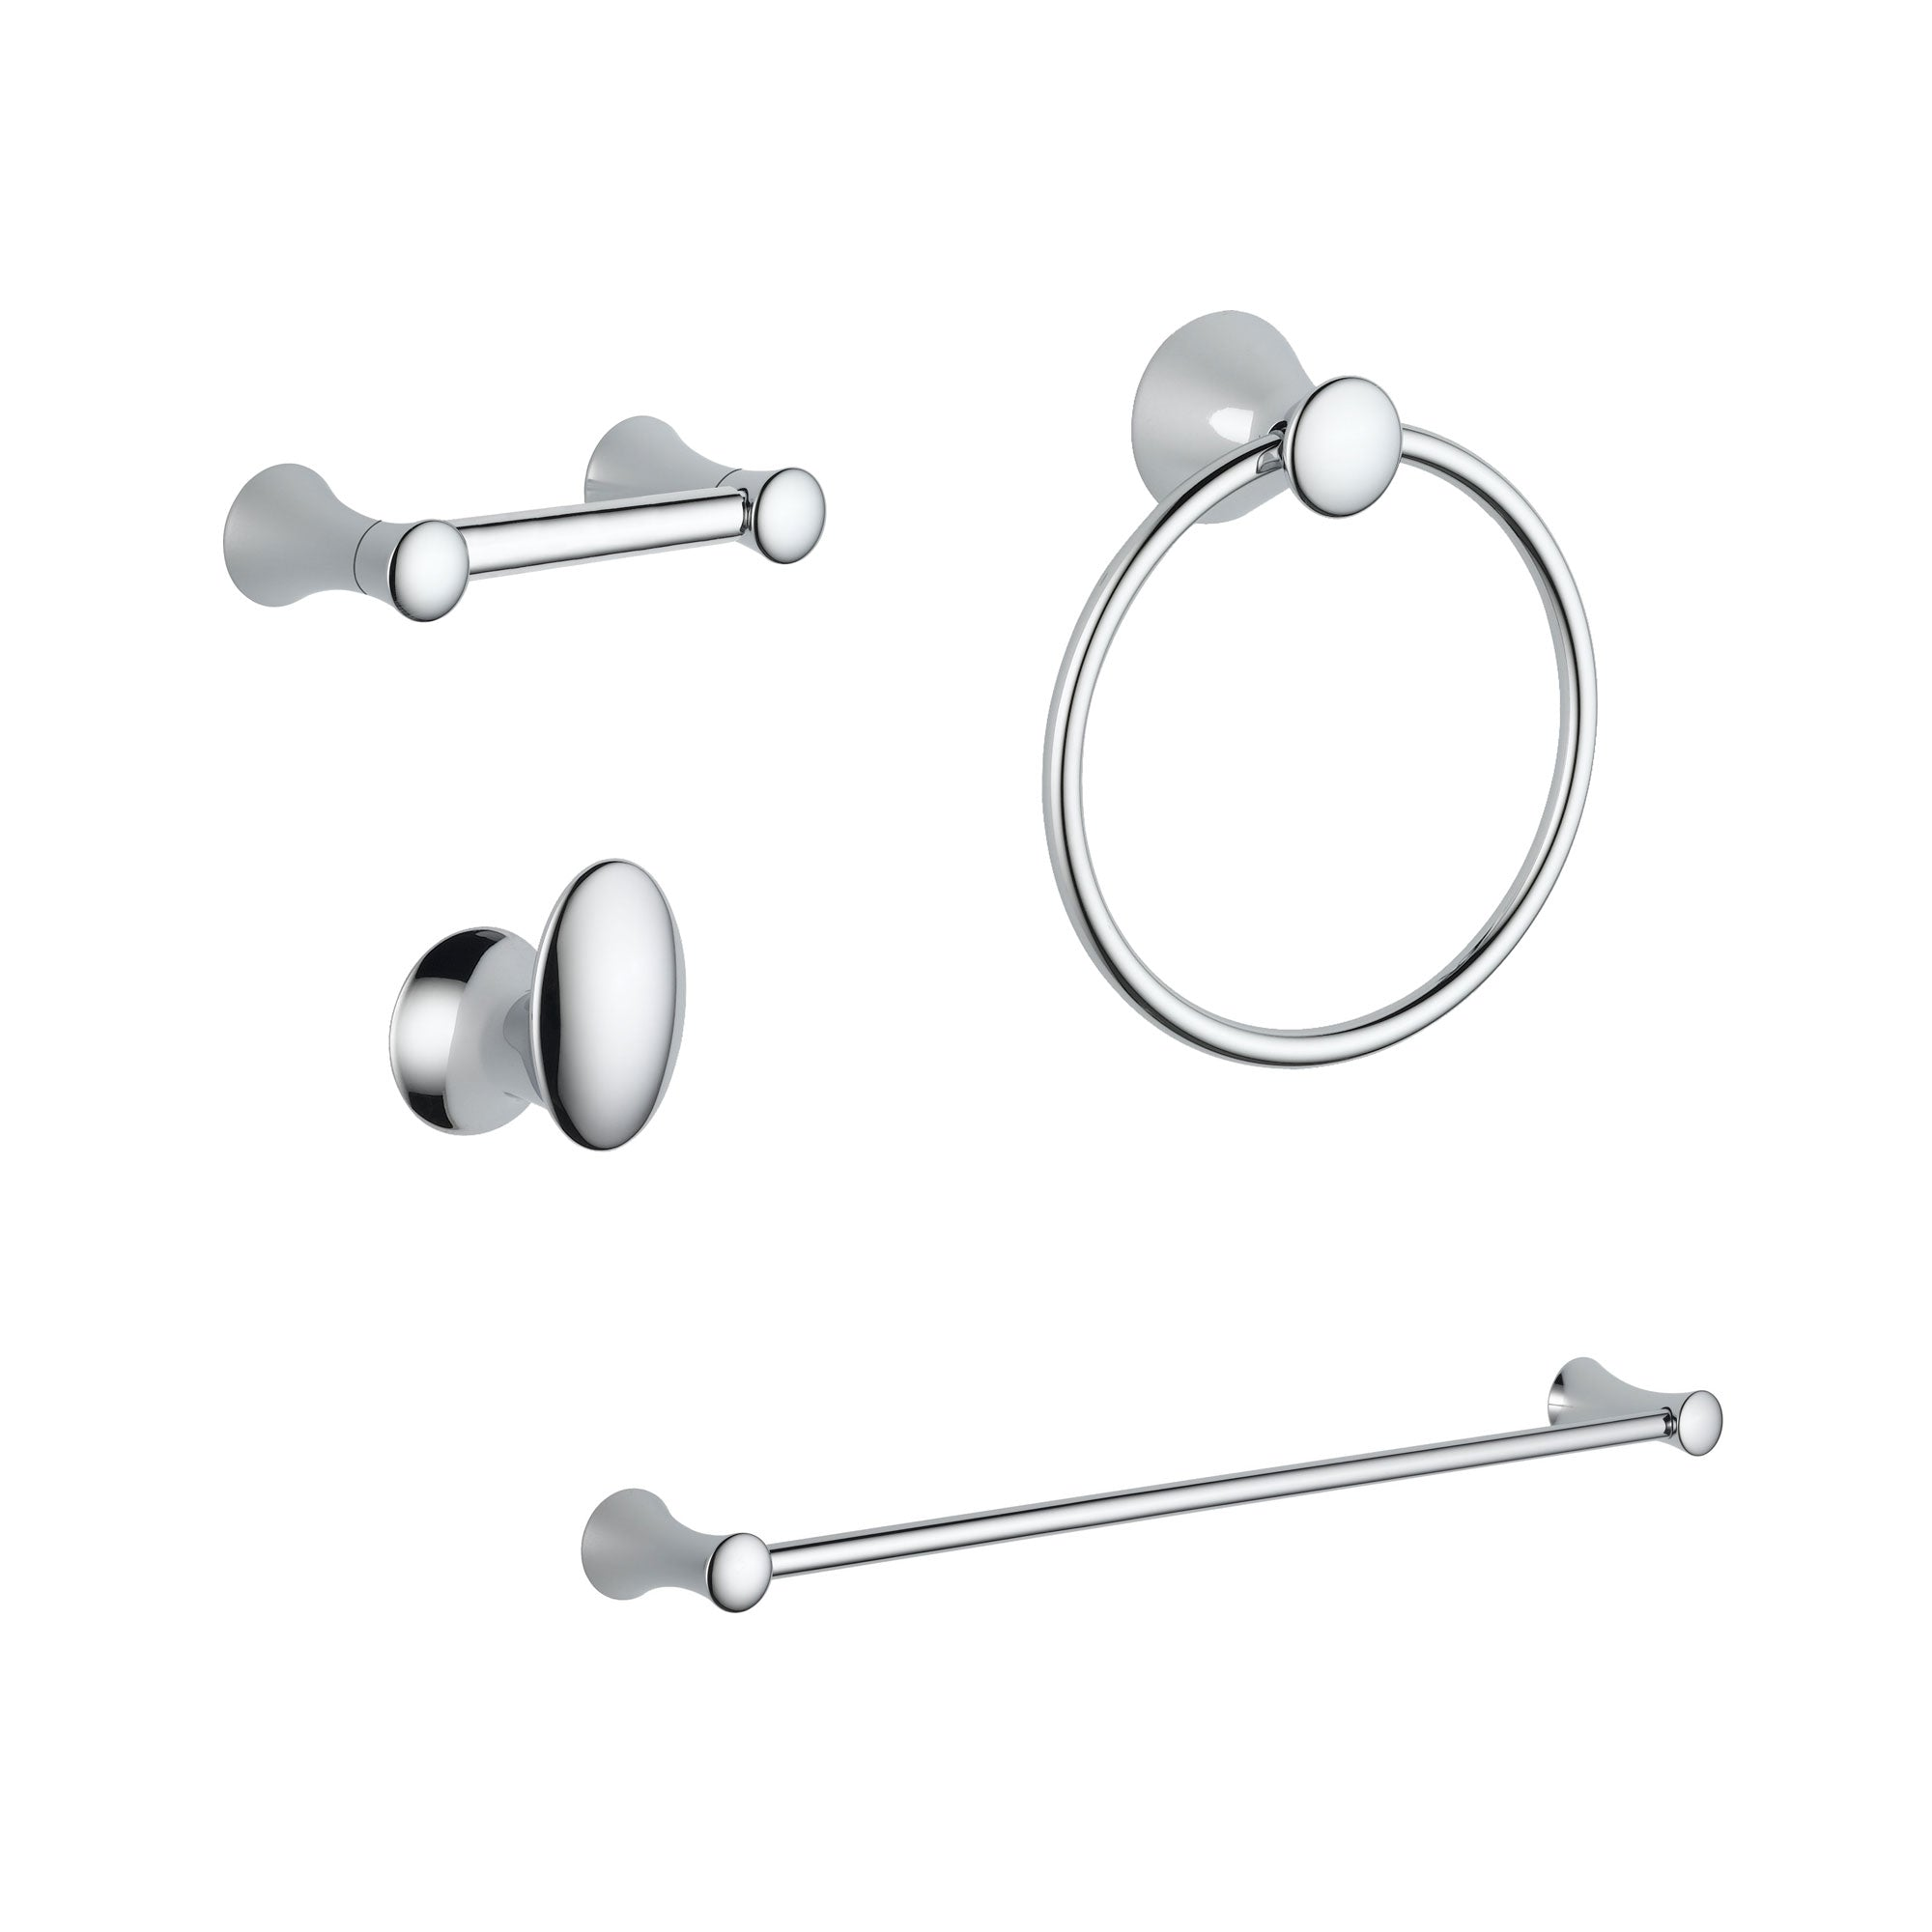 "Delta Lahara Chrome DELUXE Bathroom Accessory Set Includes: 24"" Towel Bar, Toilet Paper Holder, Robe Hook, and Towel Ring D10047AP"